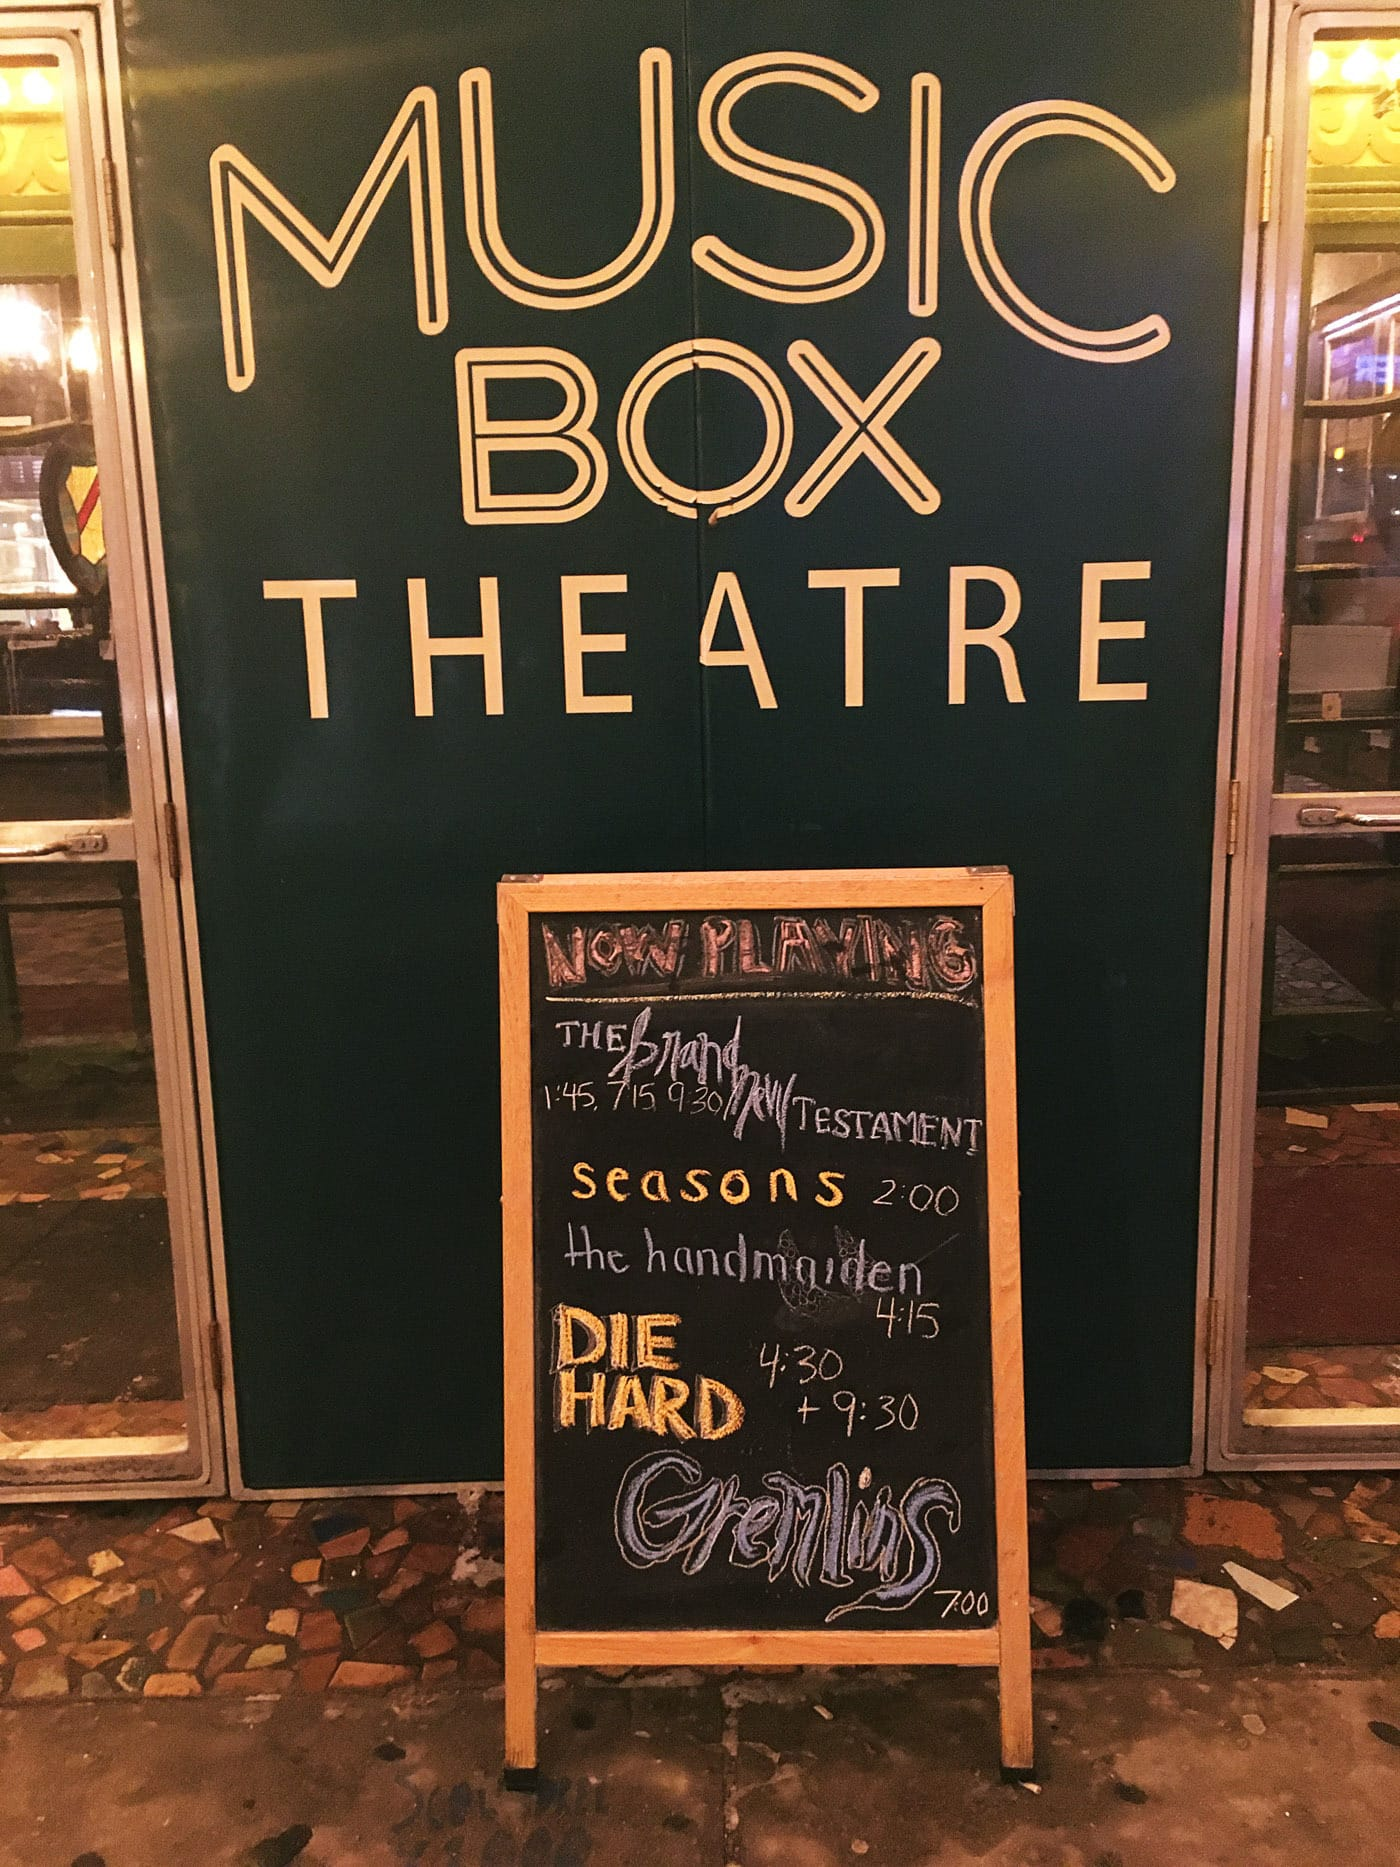 Gremlins and Die Hard Christmas double feature at Music Box Theater in Chicago.